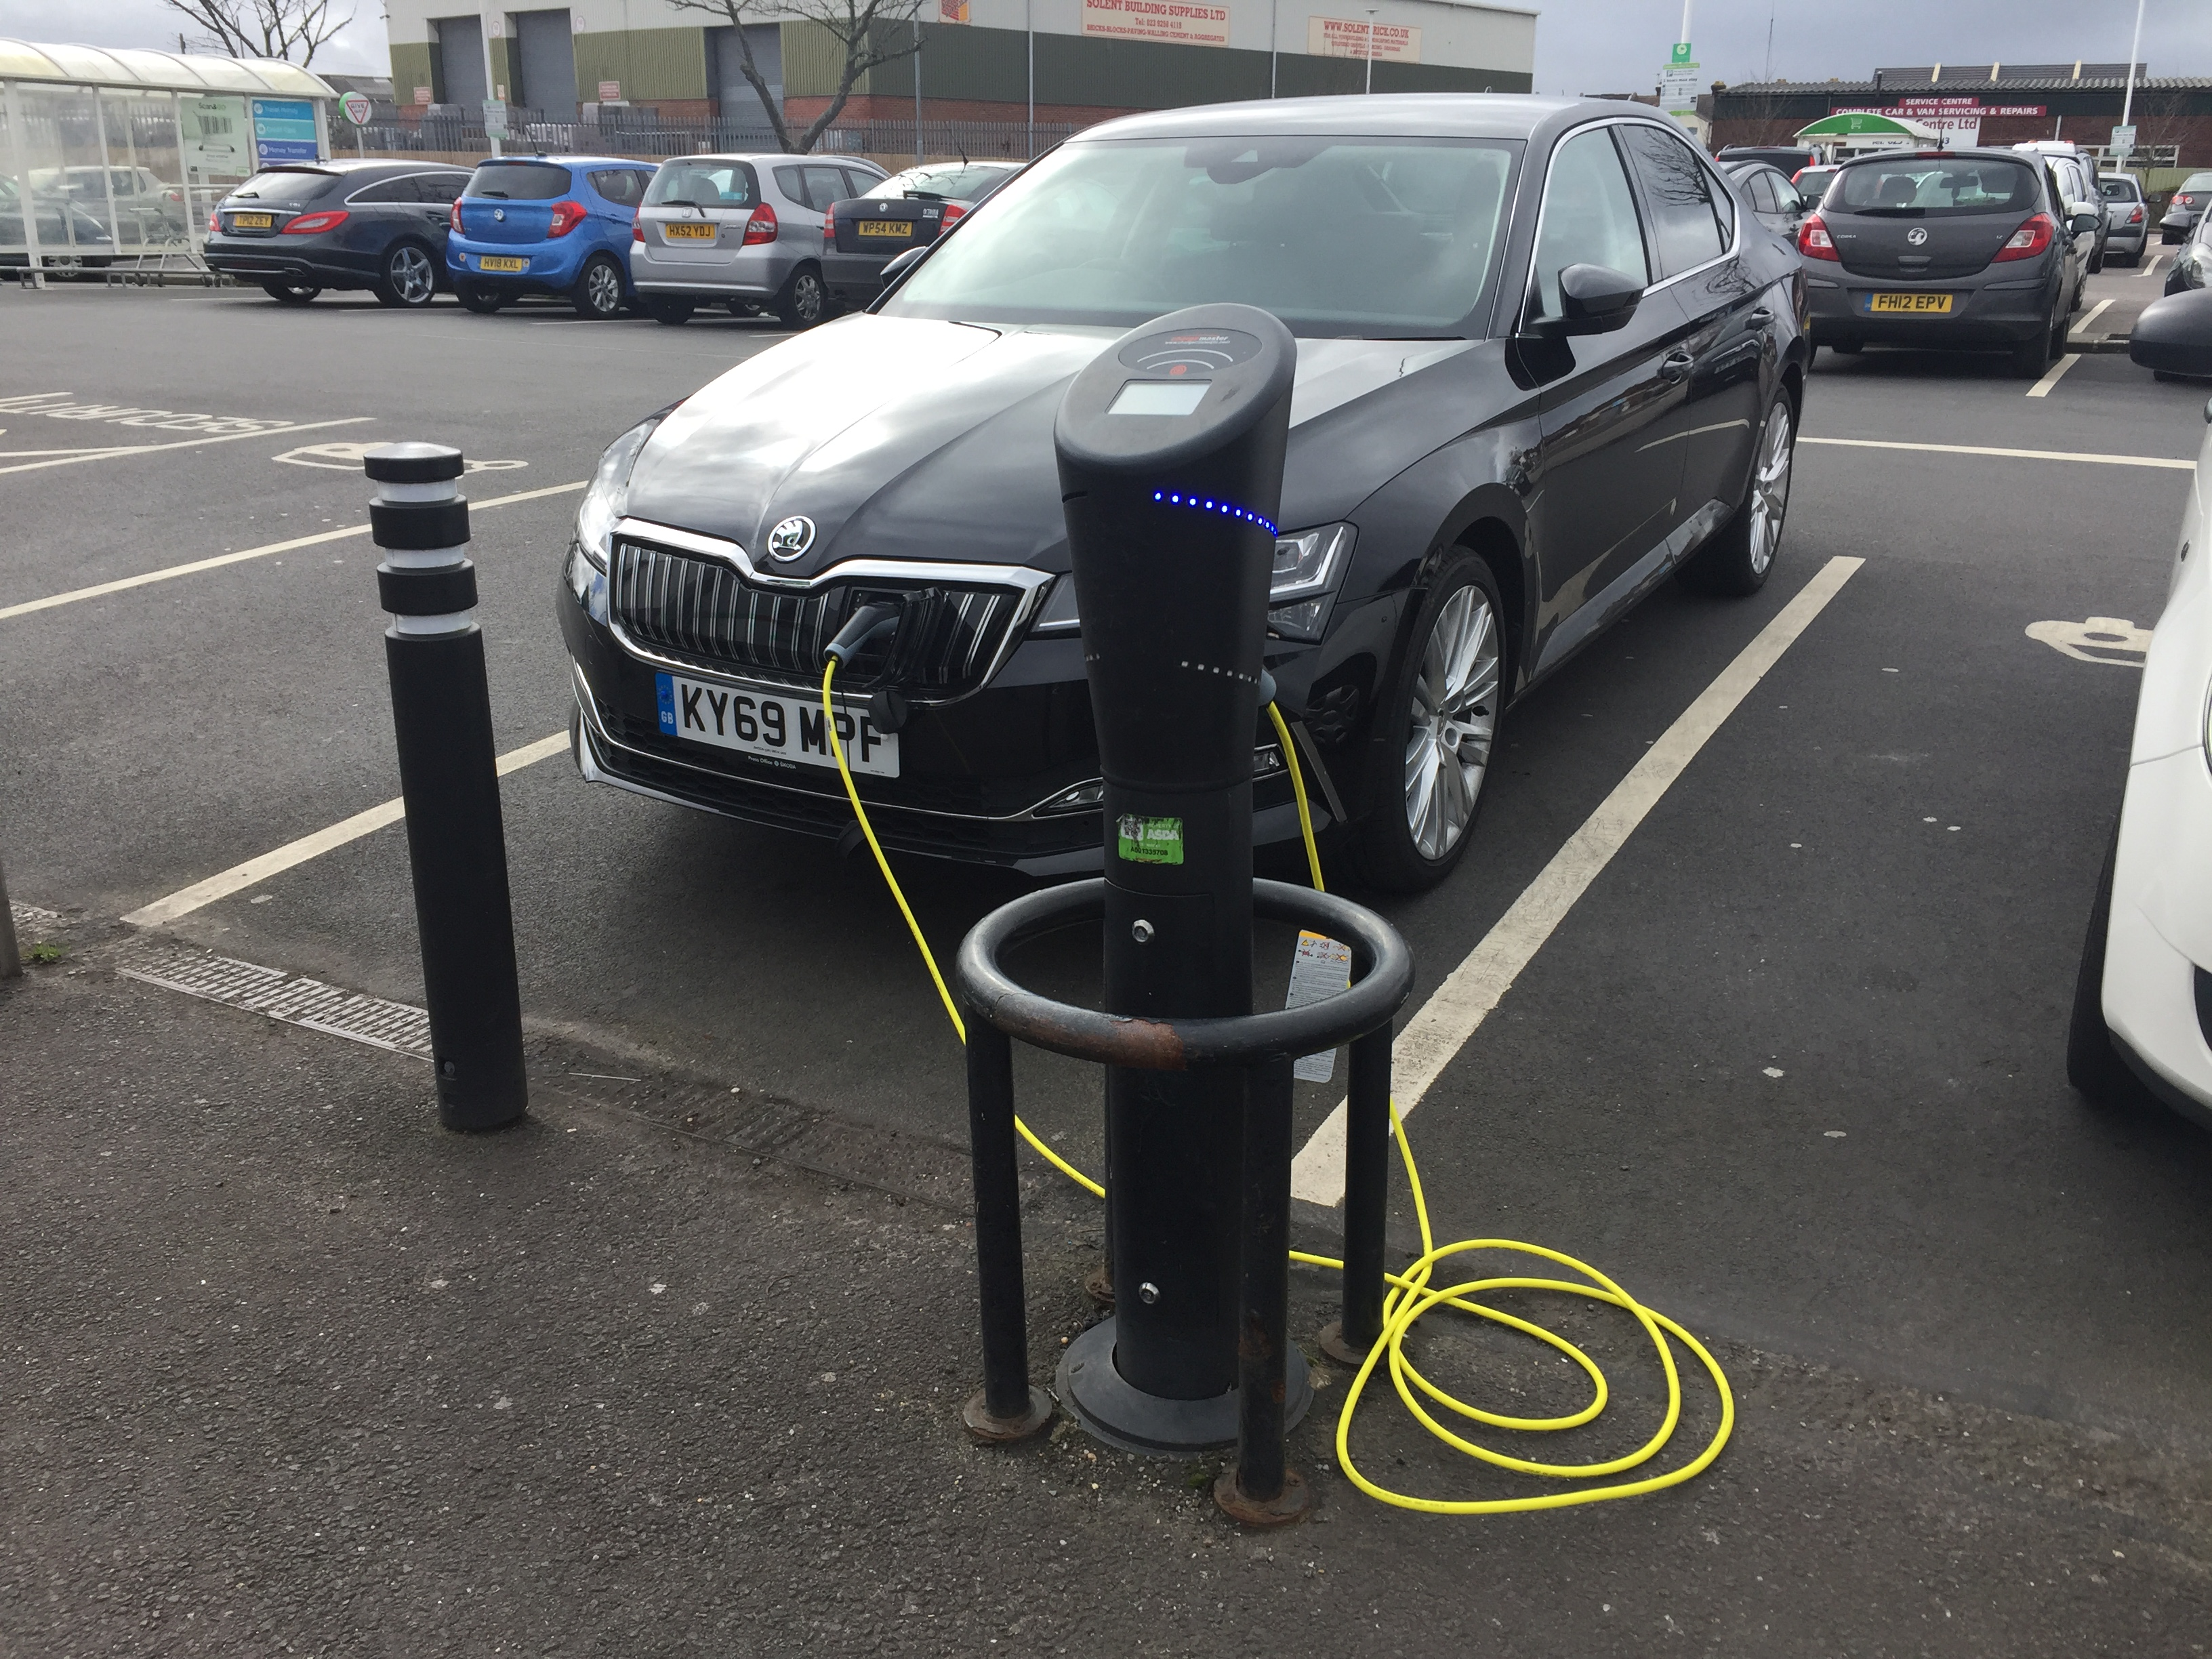 Skoda Superb attached to charging point